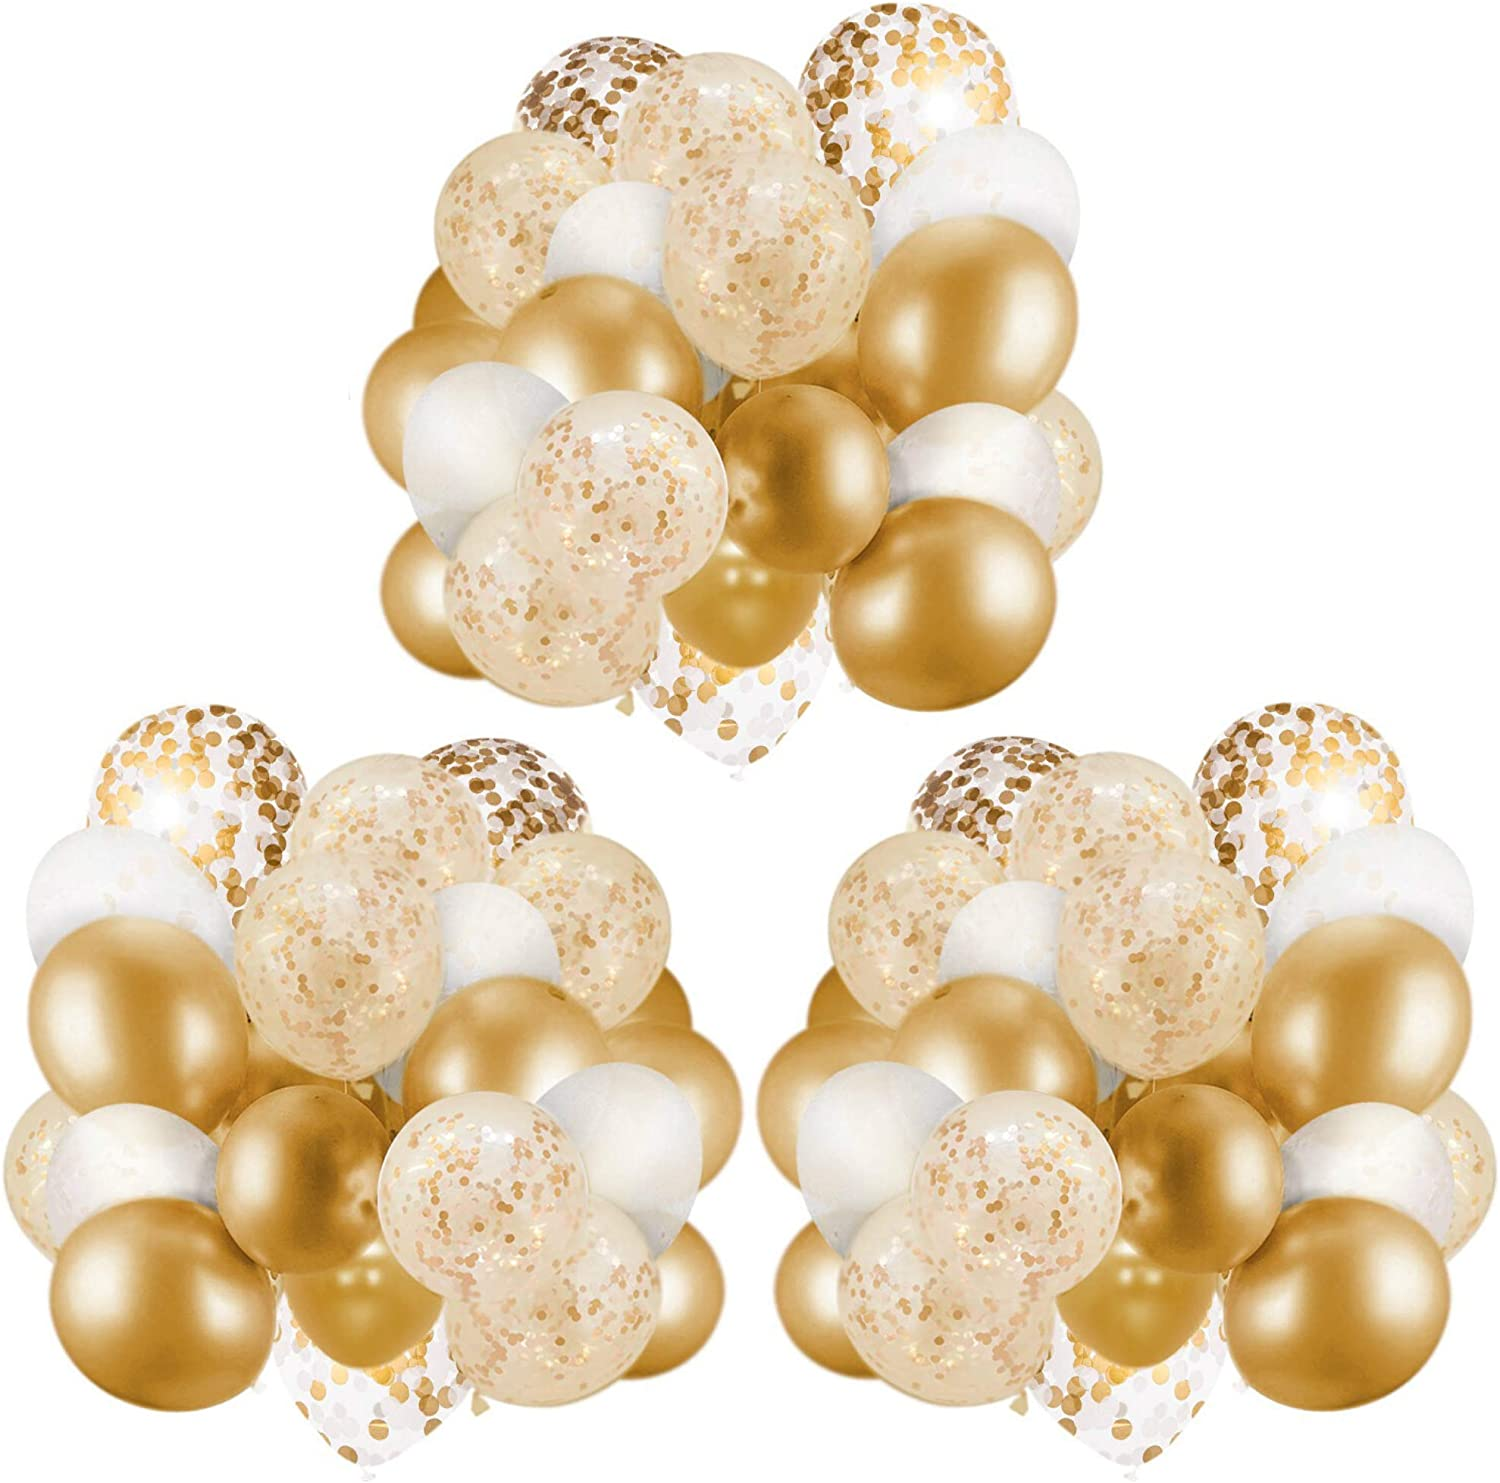 Gxhong 80 pieces balloons golden white black matellic balloons golden confetti balloons latex balloons helium colorful balloons for wedding girls boys birthday party decoration golden